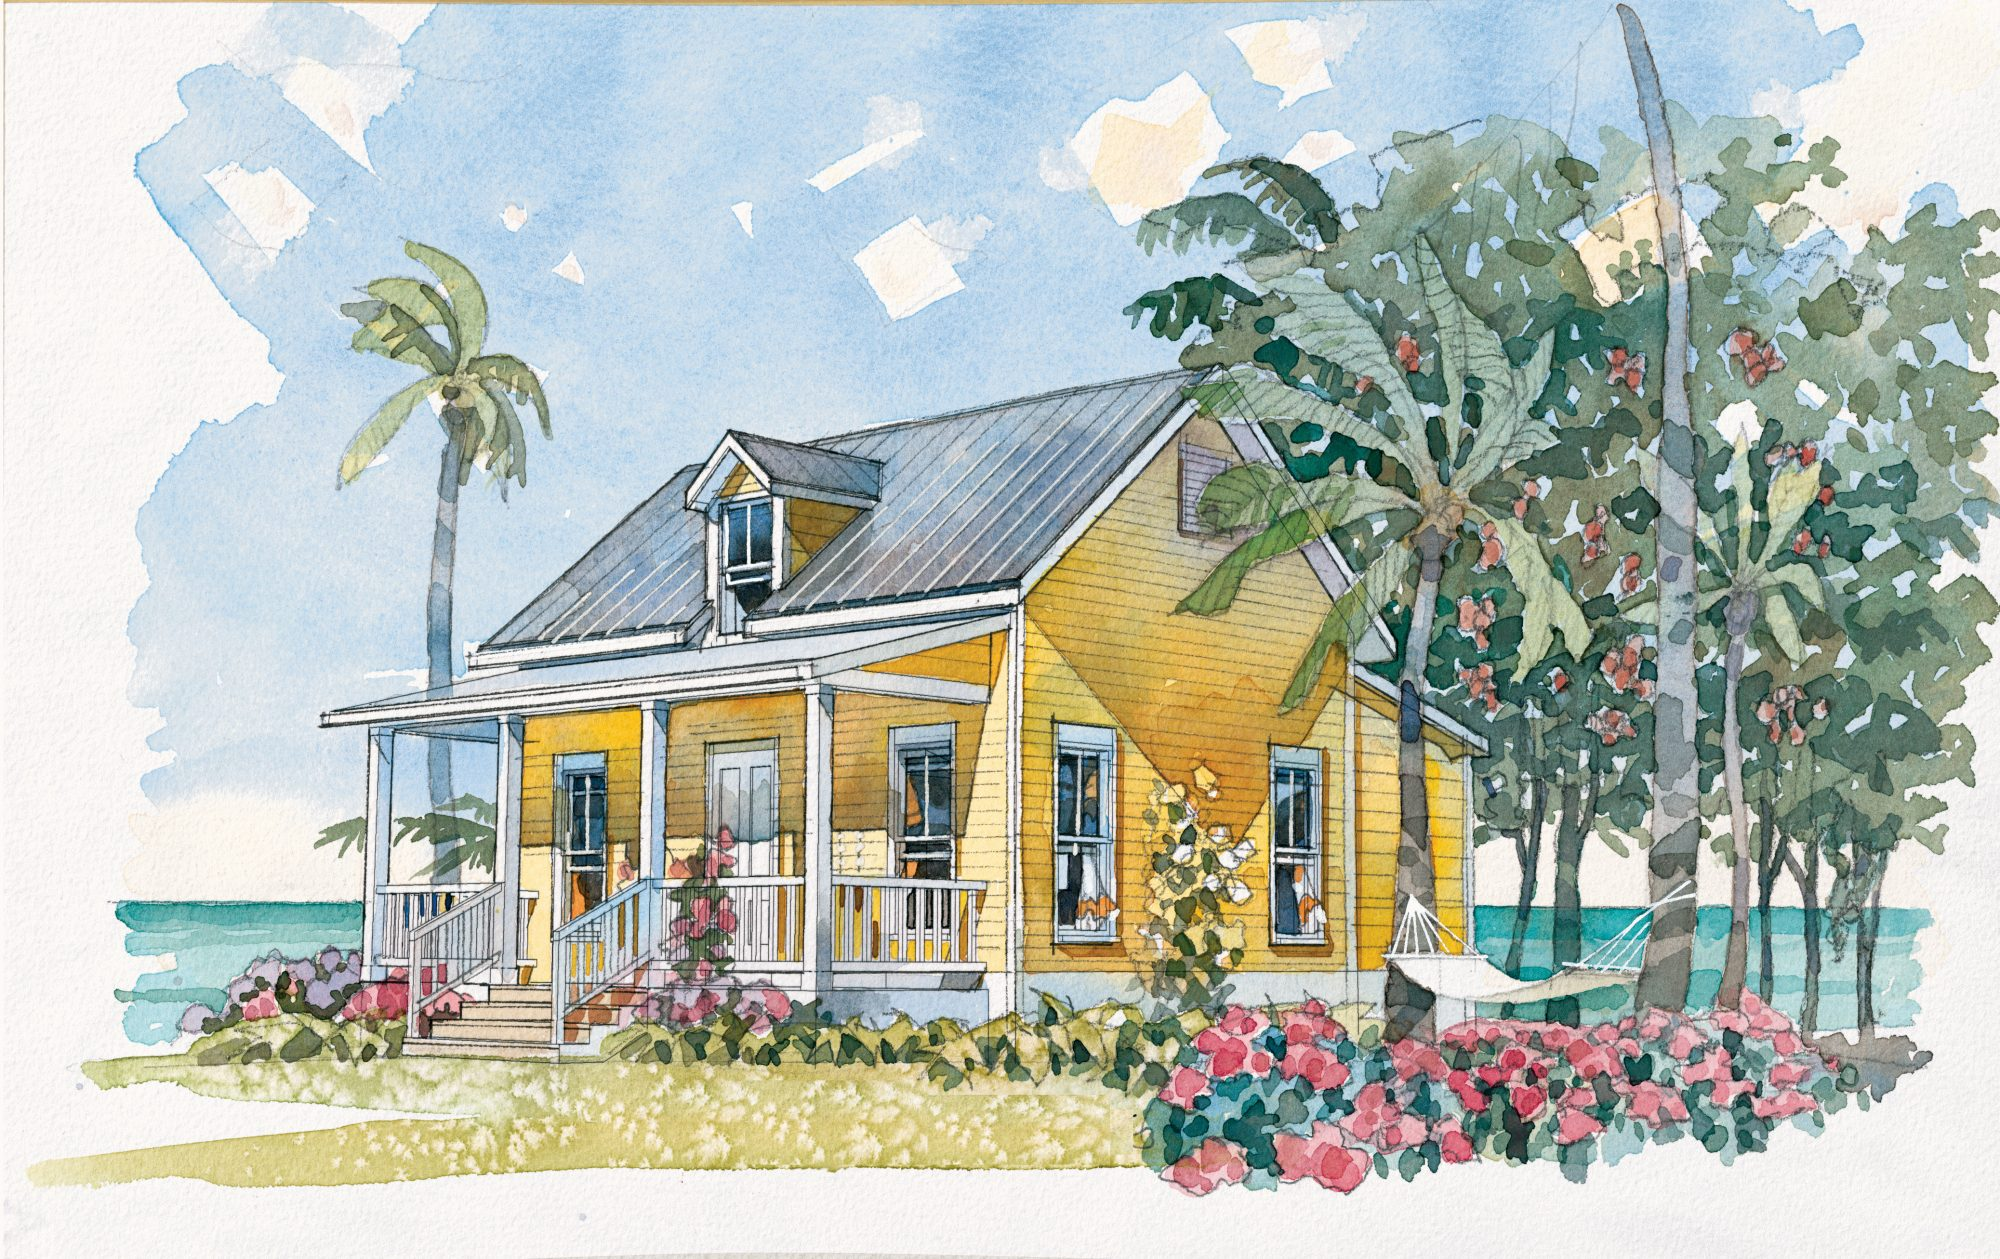 At 484 square feet, this sweet little cottage, with its charming gabled roof and gracious front porch, is ideal for an oceanfront retreat for two. The plan features a living room, kitchen with a peninsula and plenty counter space (plus a pantry), and a ma